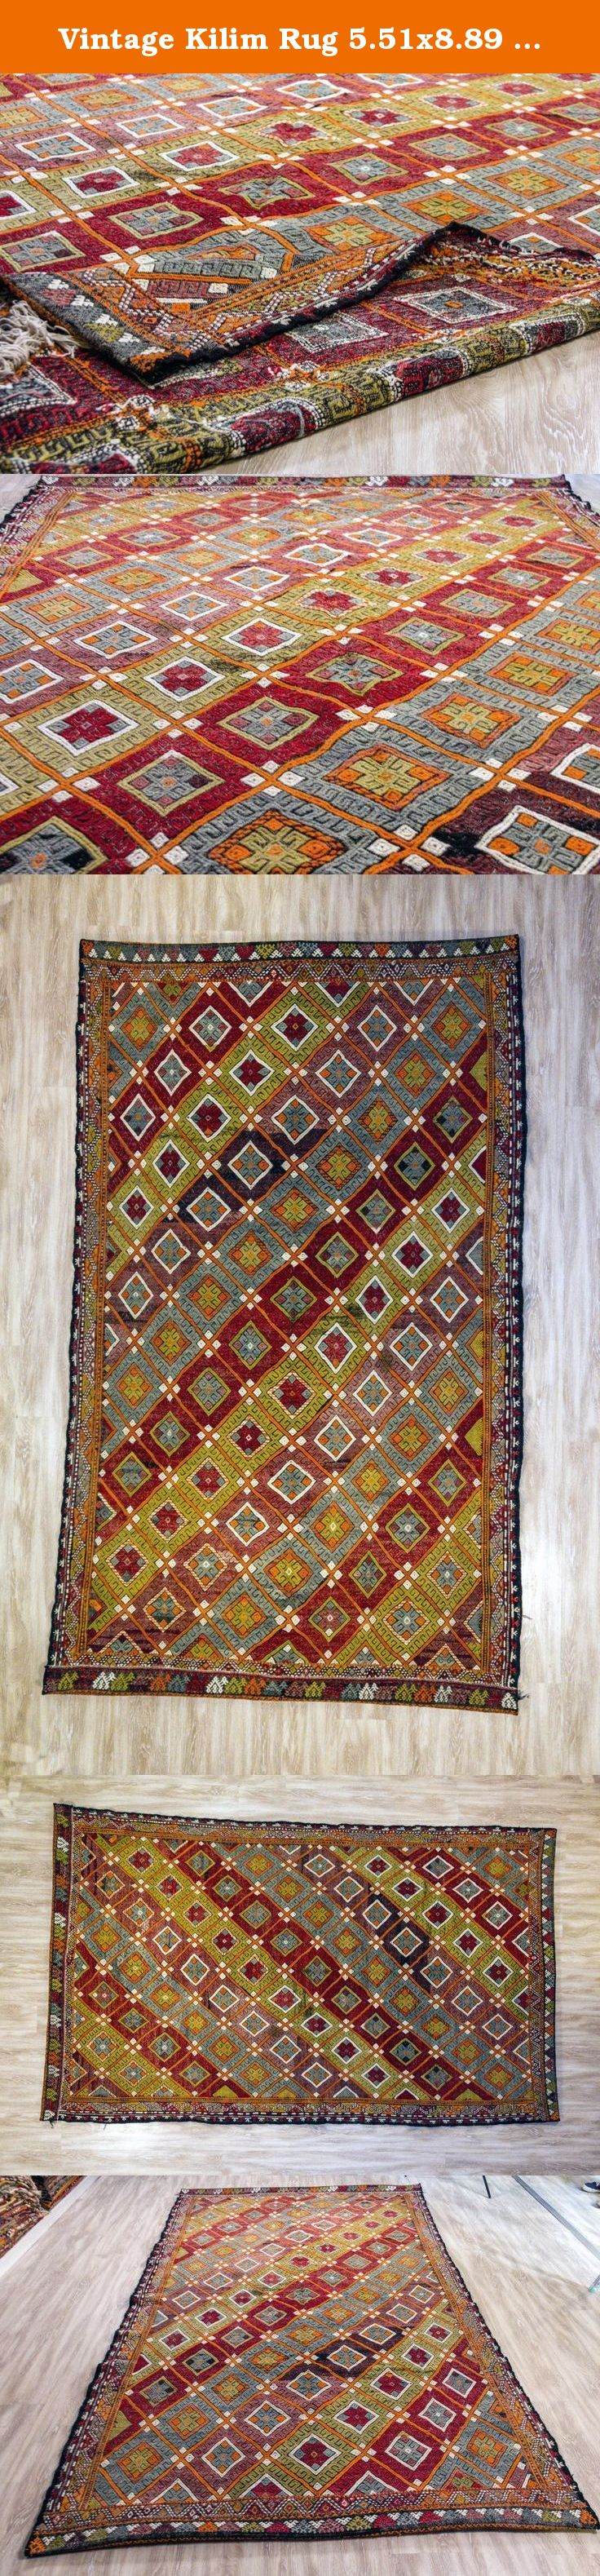 Vintage Kilim Rug 5.51x8.89 ft (168x271 cm). Beautiful vintage Turkish kilim rug around 50-60 years old and in very good condition. Material: 100%wool, hand woven. Size: 5.51x8.89 ft (168x271 cm) Shipping in 1-3* days We will rework all kilims before ship (head/end corrections,fringe creation, stretching, border correction,local corrections and re-cleaning etc) We deliver it in perfect condition. We use express shipping; USA maximum 4 business days,Europe max. 3 business days Ref: M2311-36.